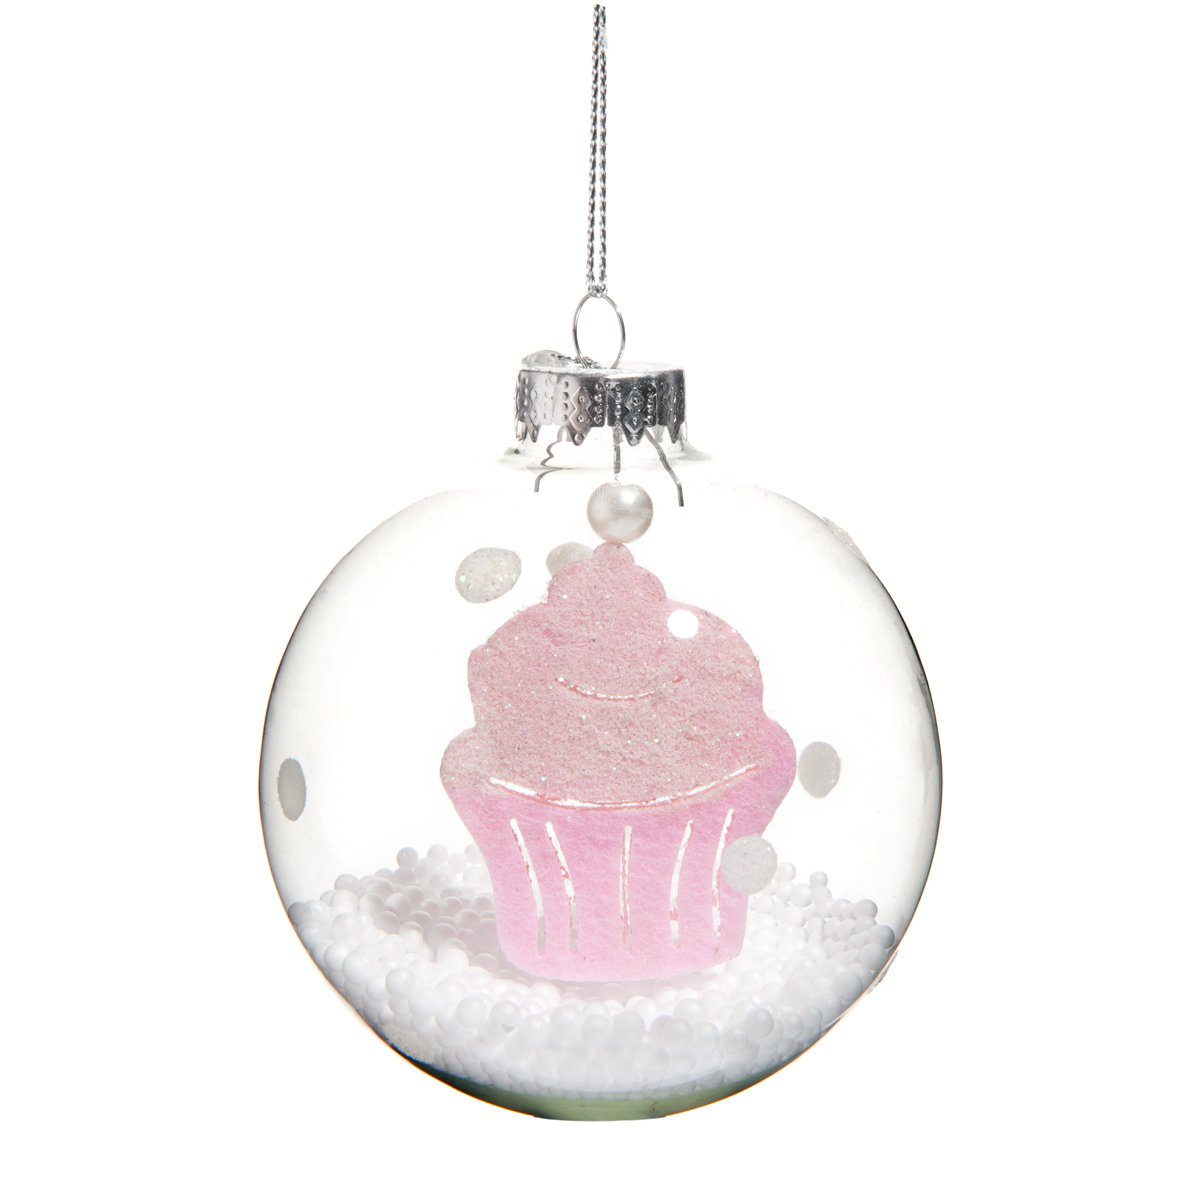 decoration noel gourmand Sucette Enfant